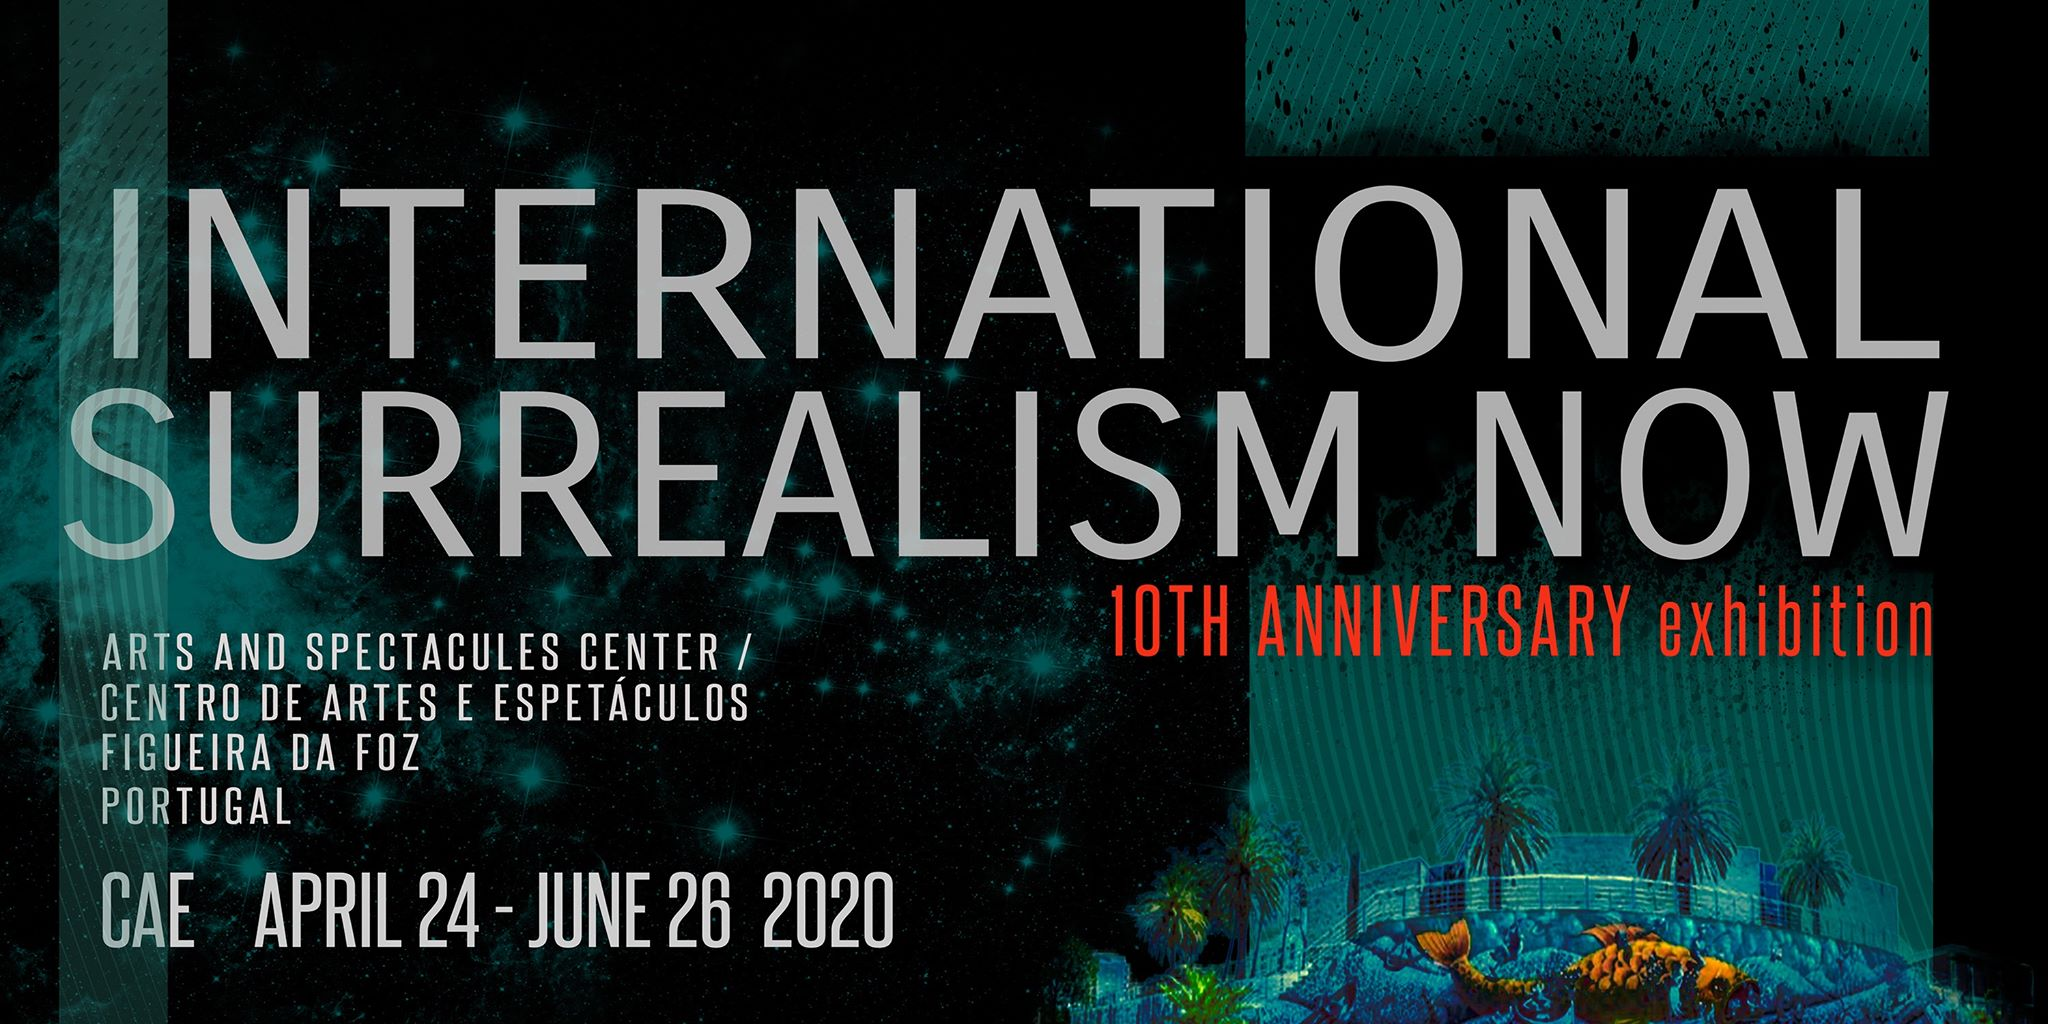 10 YEARS of the International Surrealism Now Exhibition at CAE